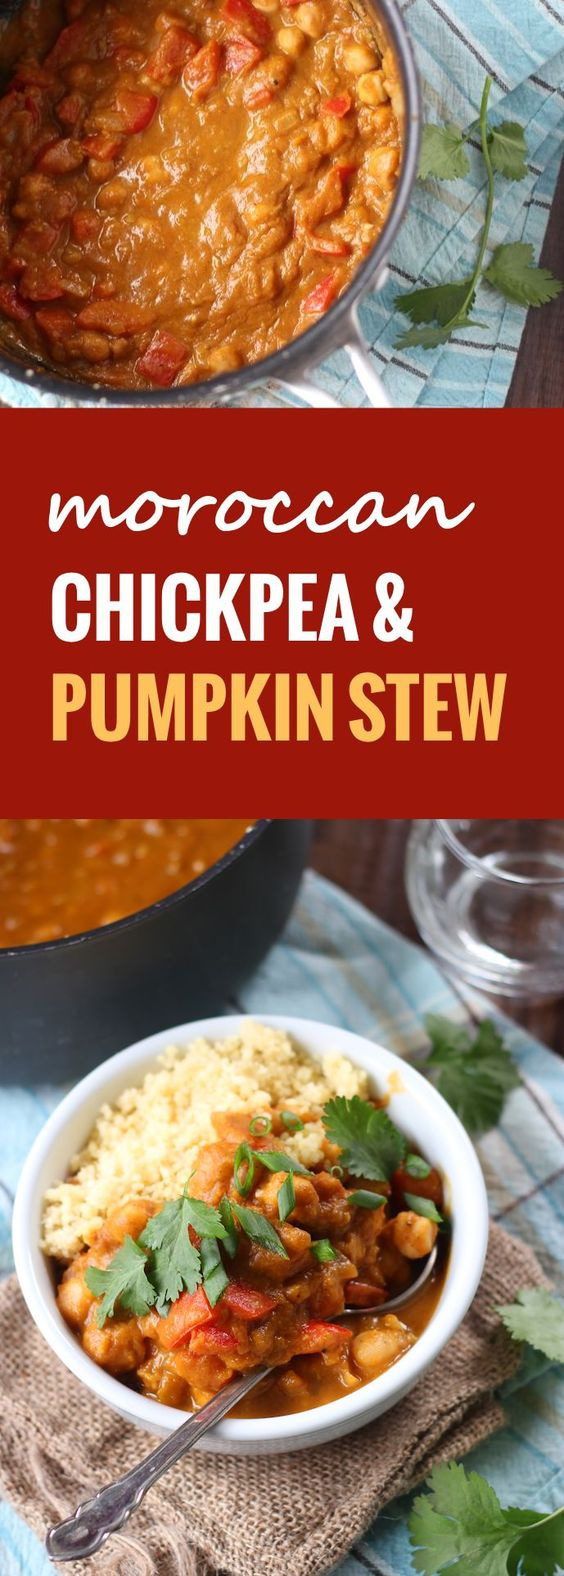 moroccan chickpea and more chickpeas stew pumpkins pumpkin stew ...